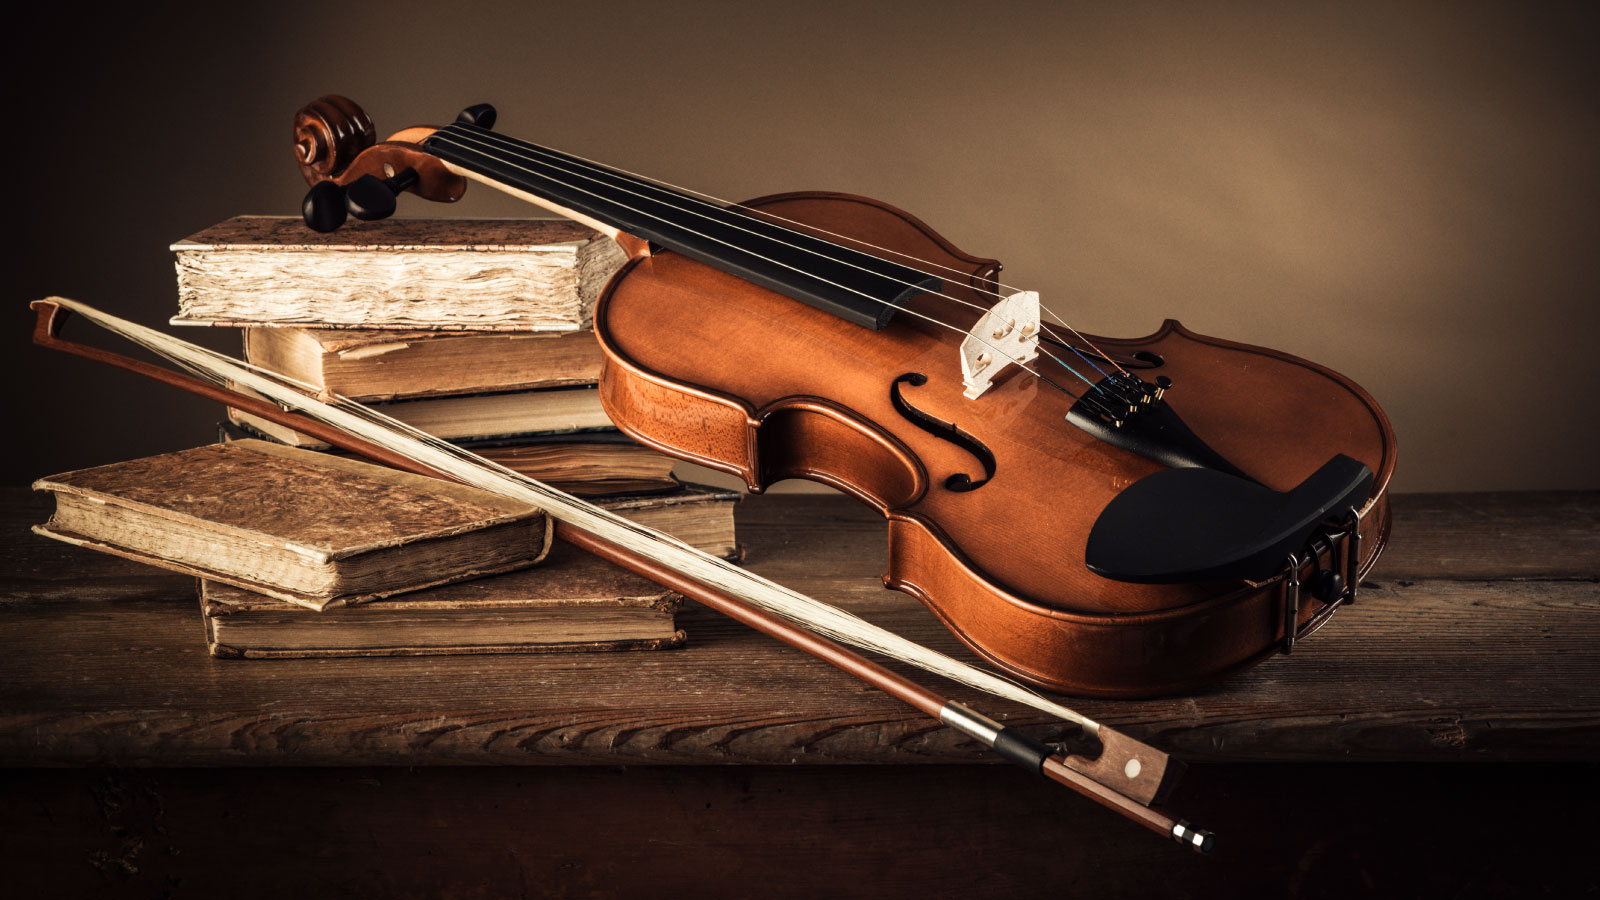 Classical violin with antique books.